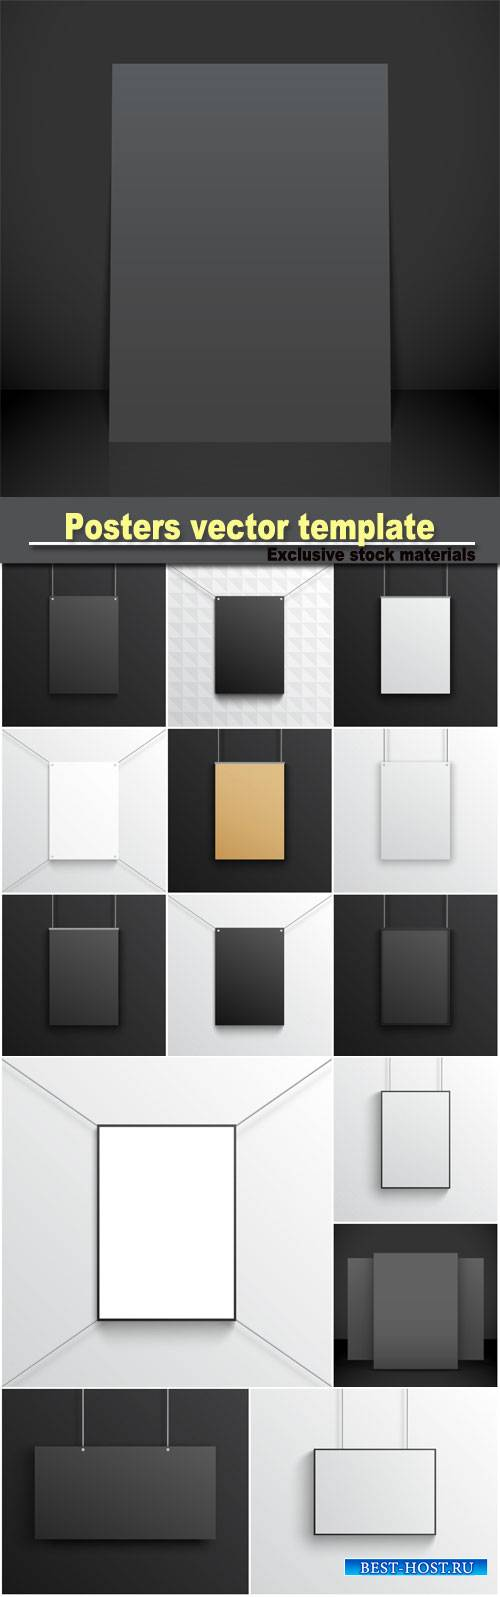 Posters template wall black and white cardboard